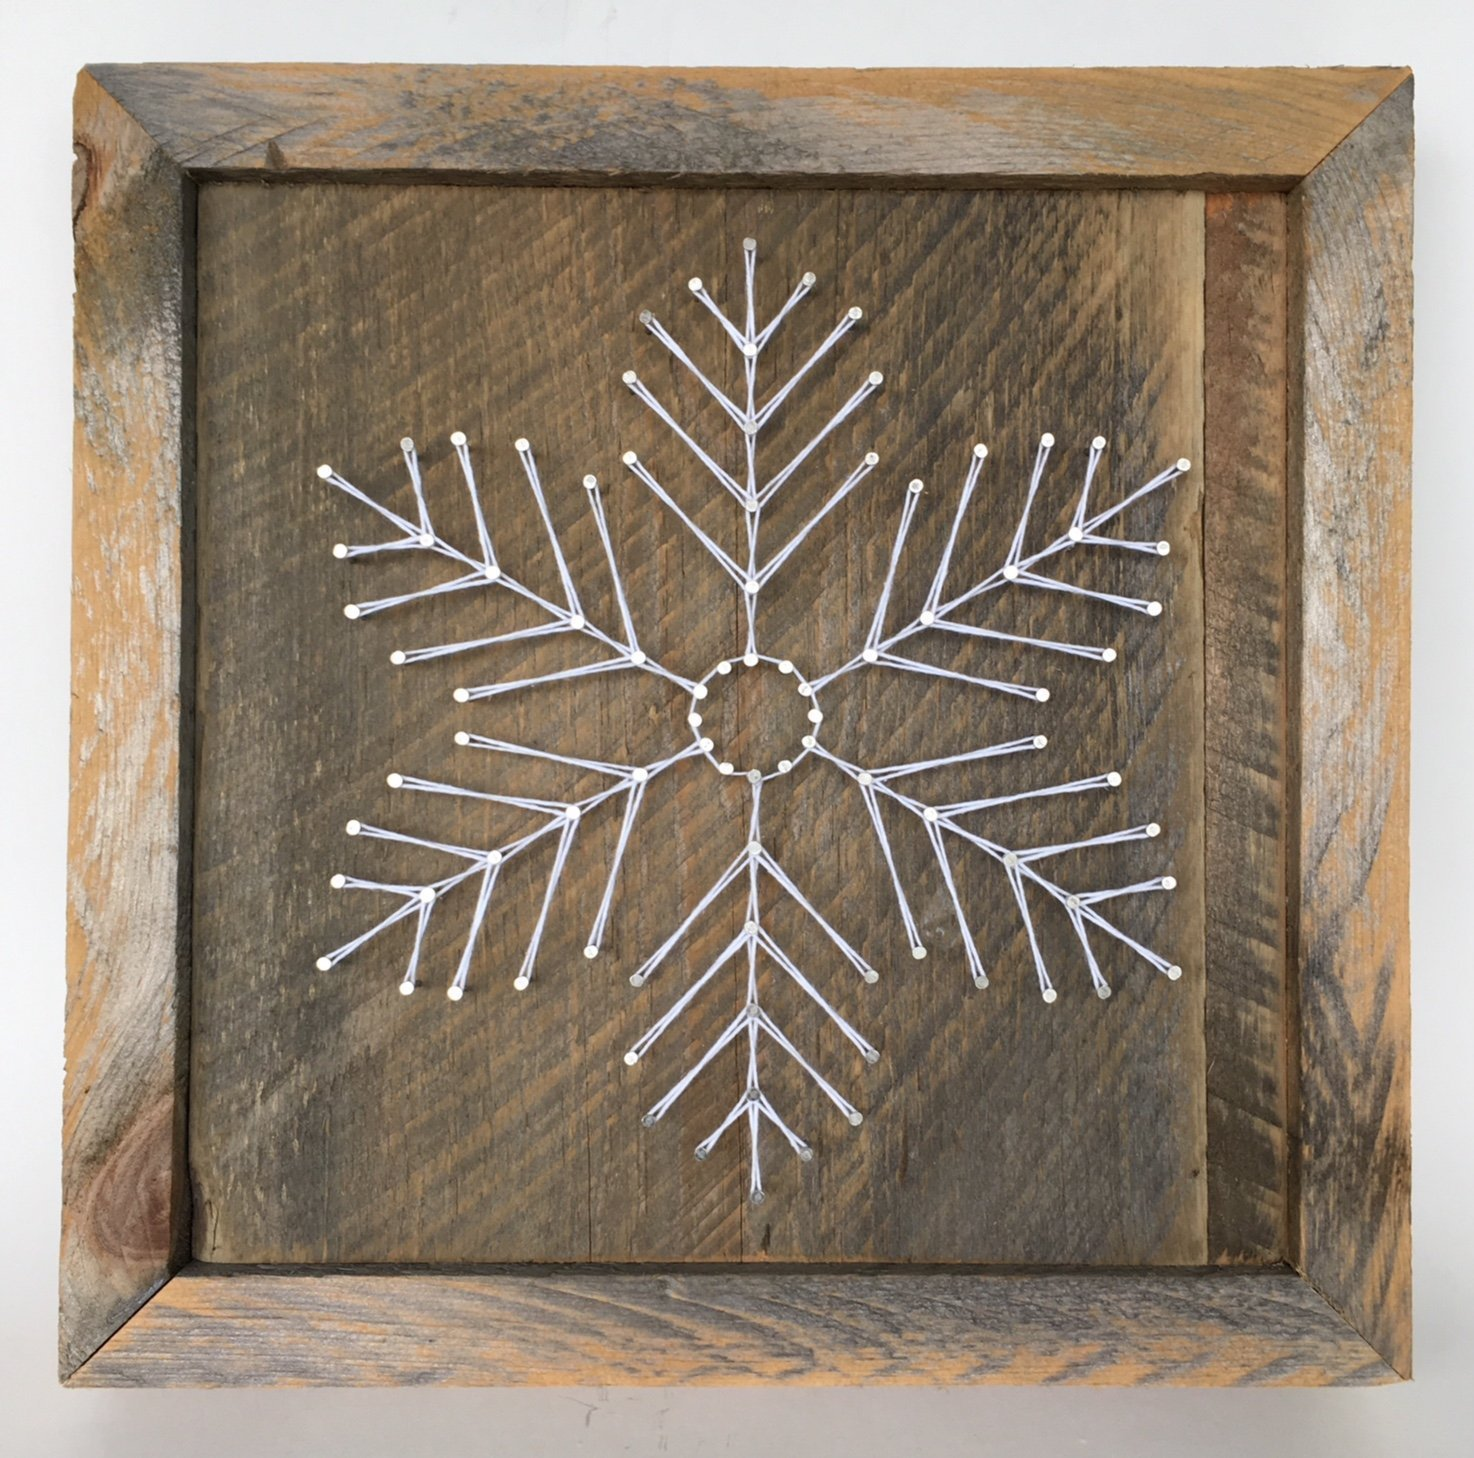 Large reclaimed wood Snowflake string art sign. A unique gift for Weddings, Anniversaries, Birthdays, Christmas, and winter home and cabin decor. A unique and special gift for skiers!